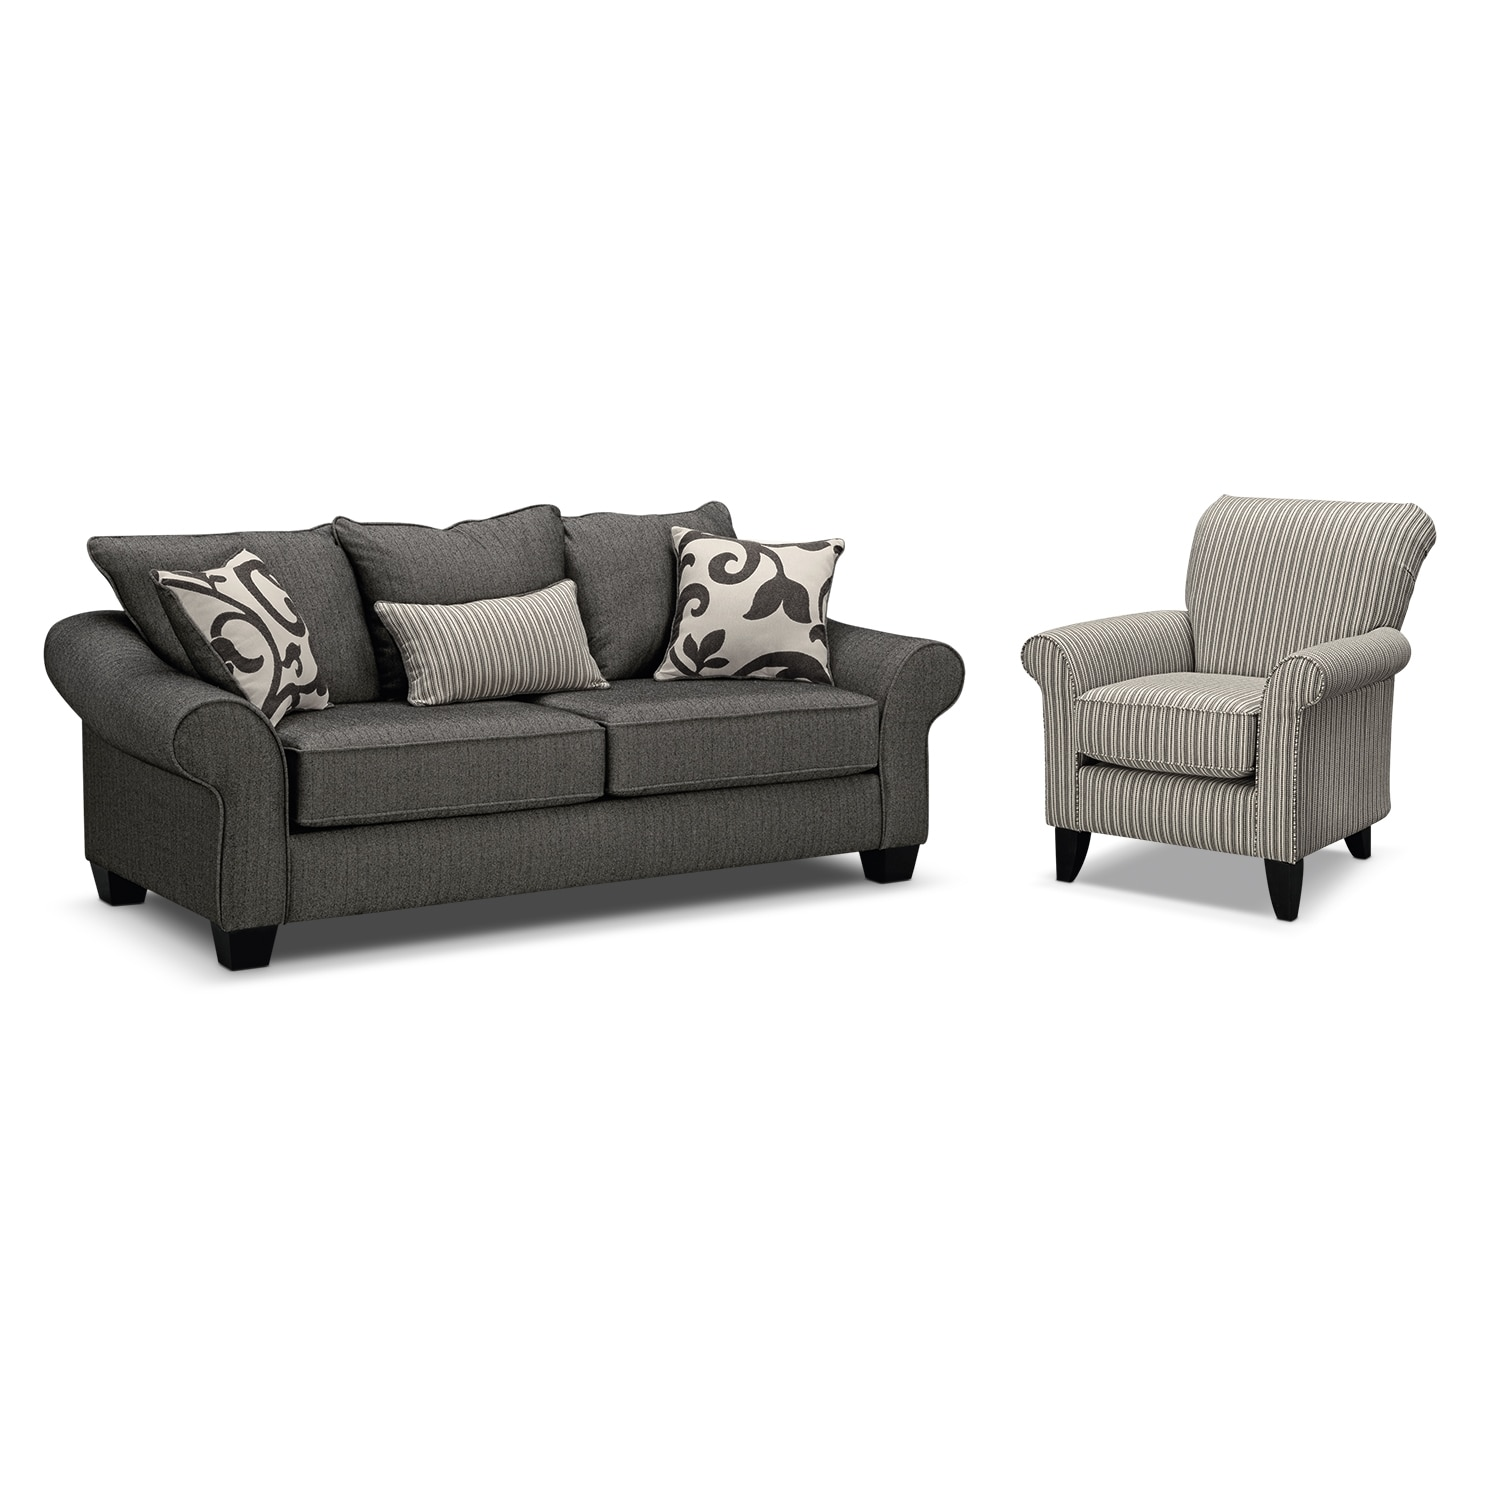 Jessica Sofa Collection Accent Chair Grey: Colette Sofa And Accent Chair Set - Gray